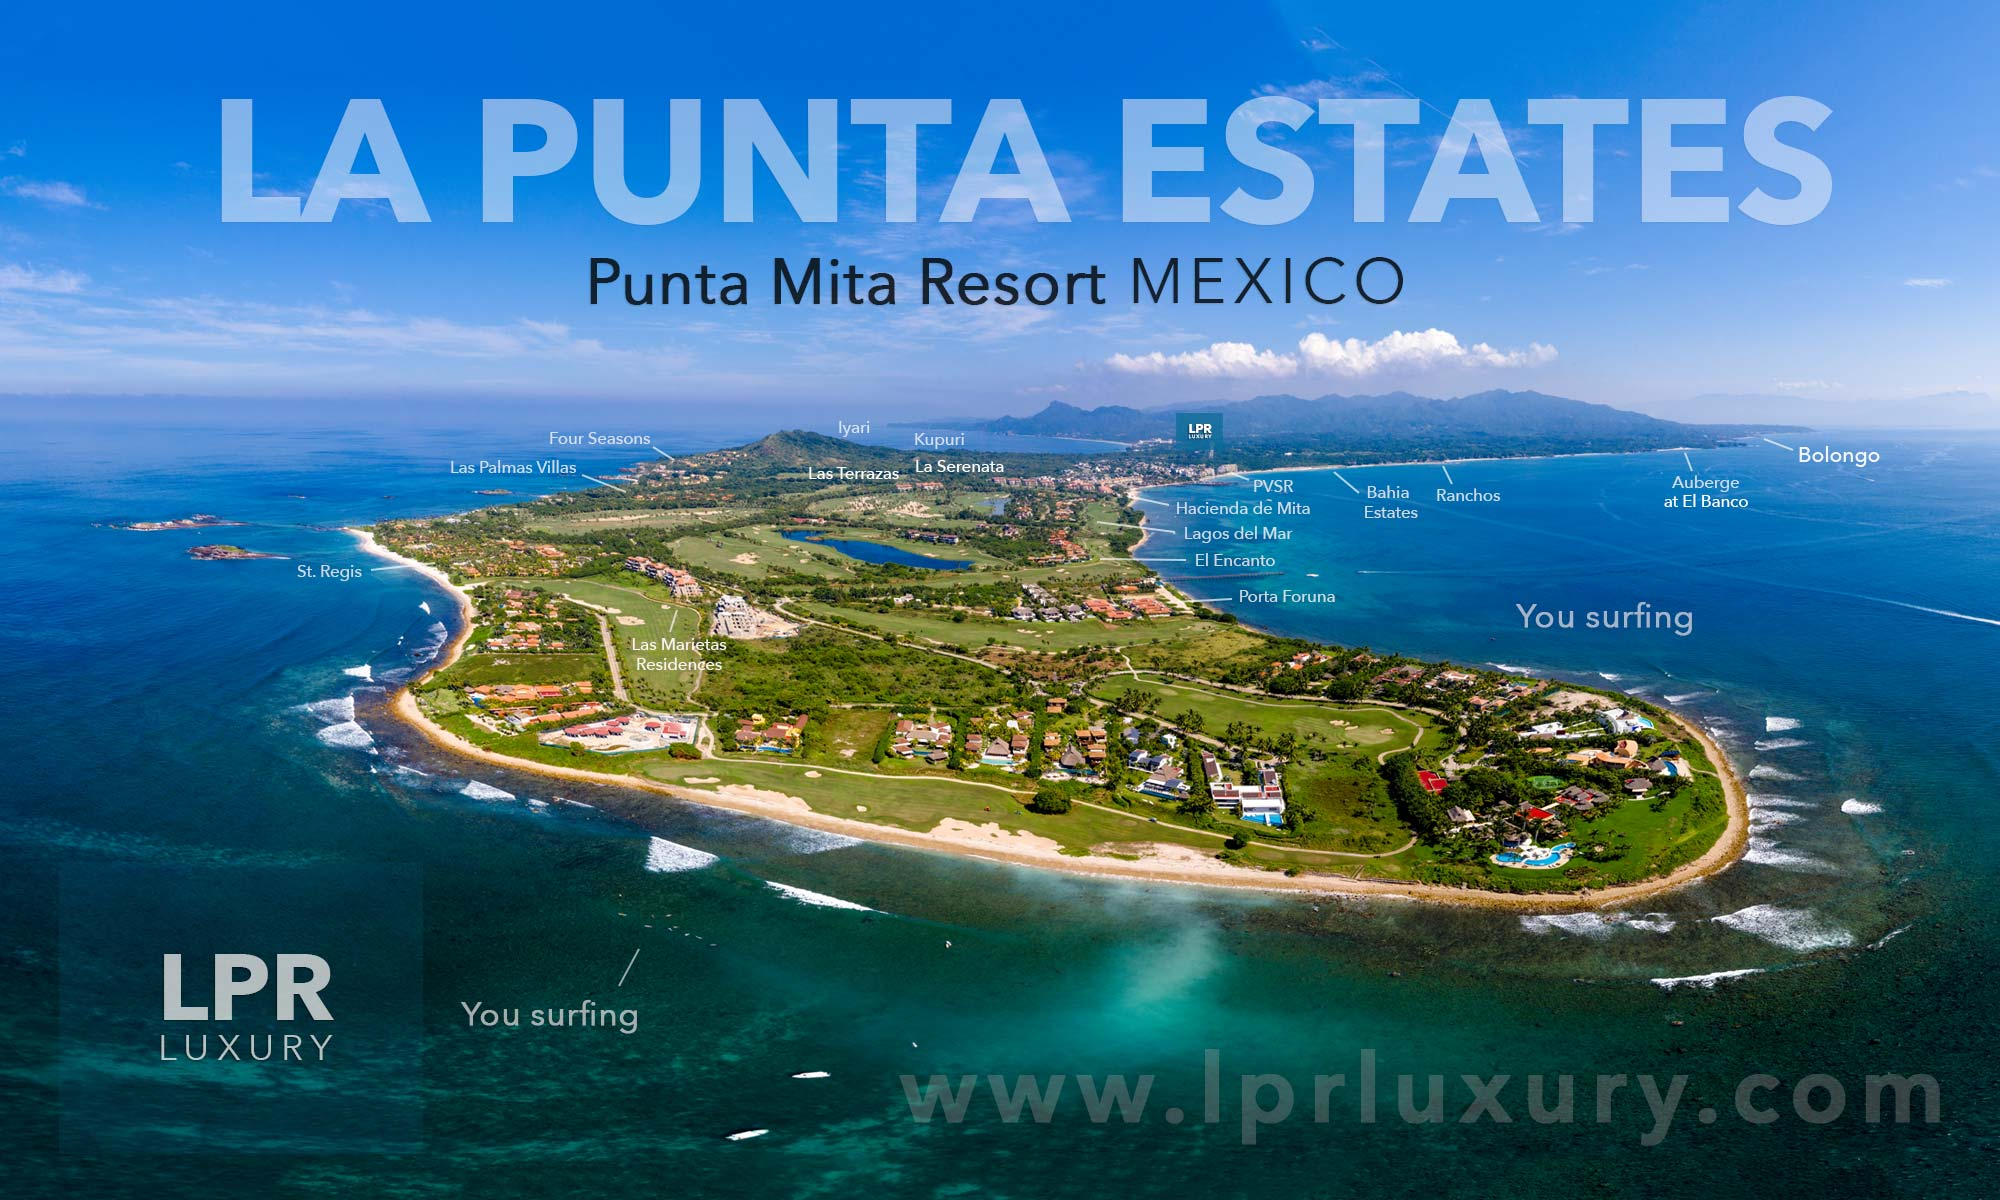 La Punta Estates - Luxury Casas and Villas at the Punta Mita Resort, Riviera Nayarit, Mexico